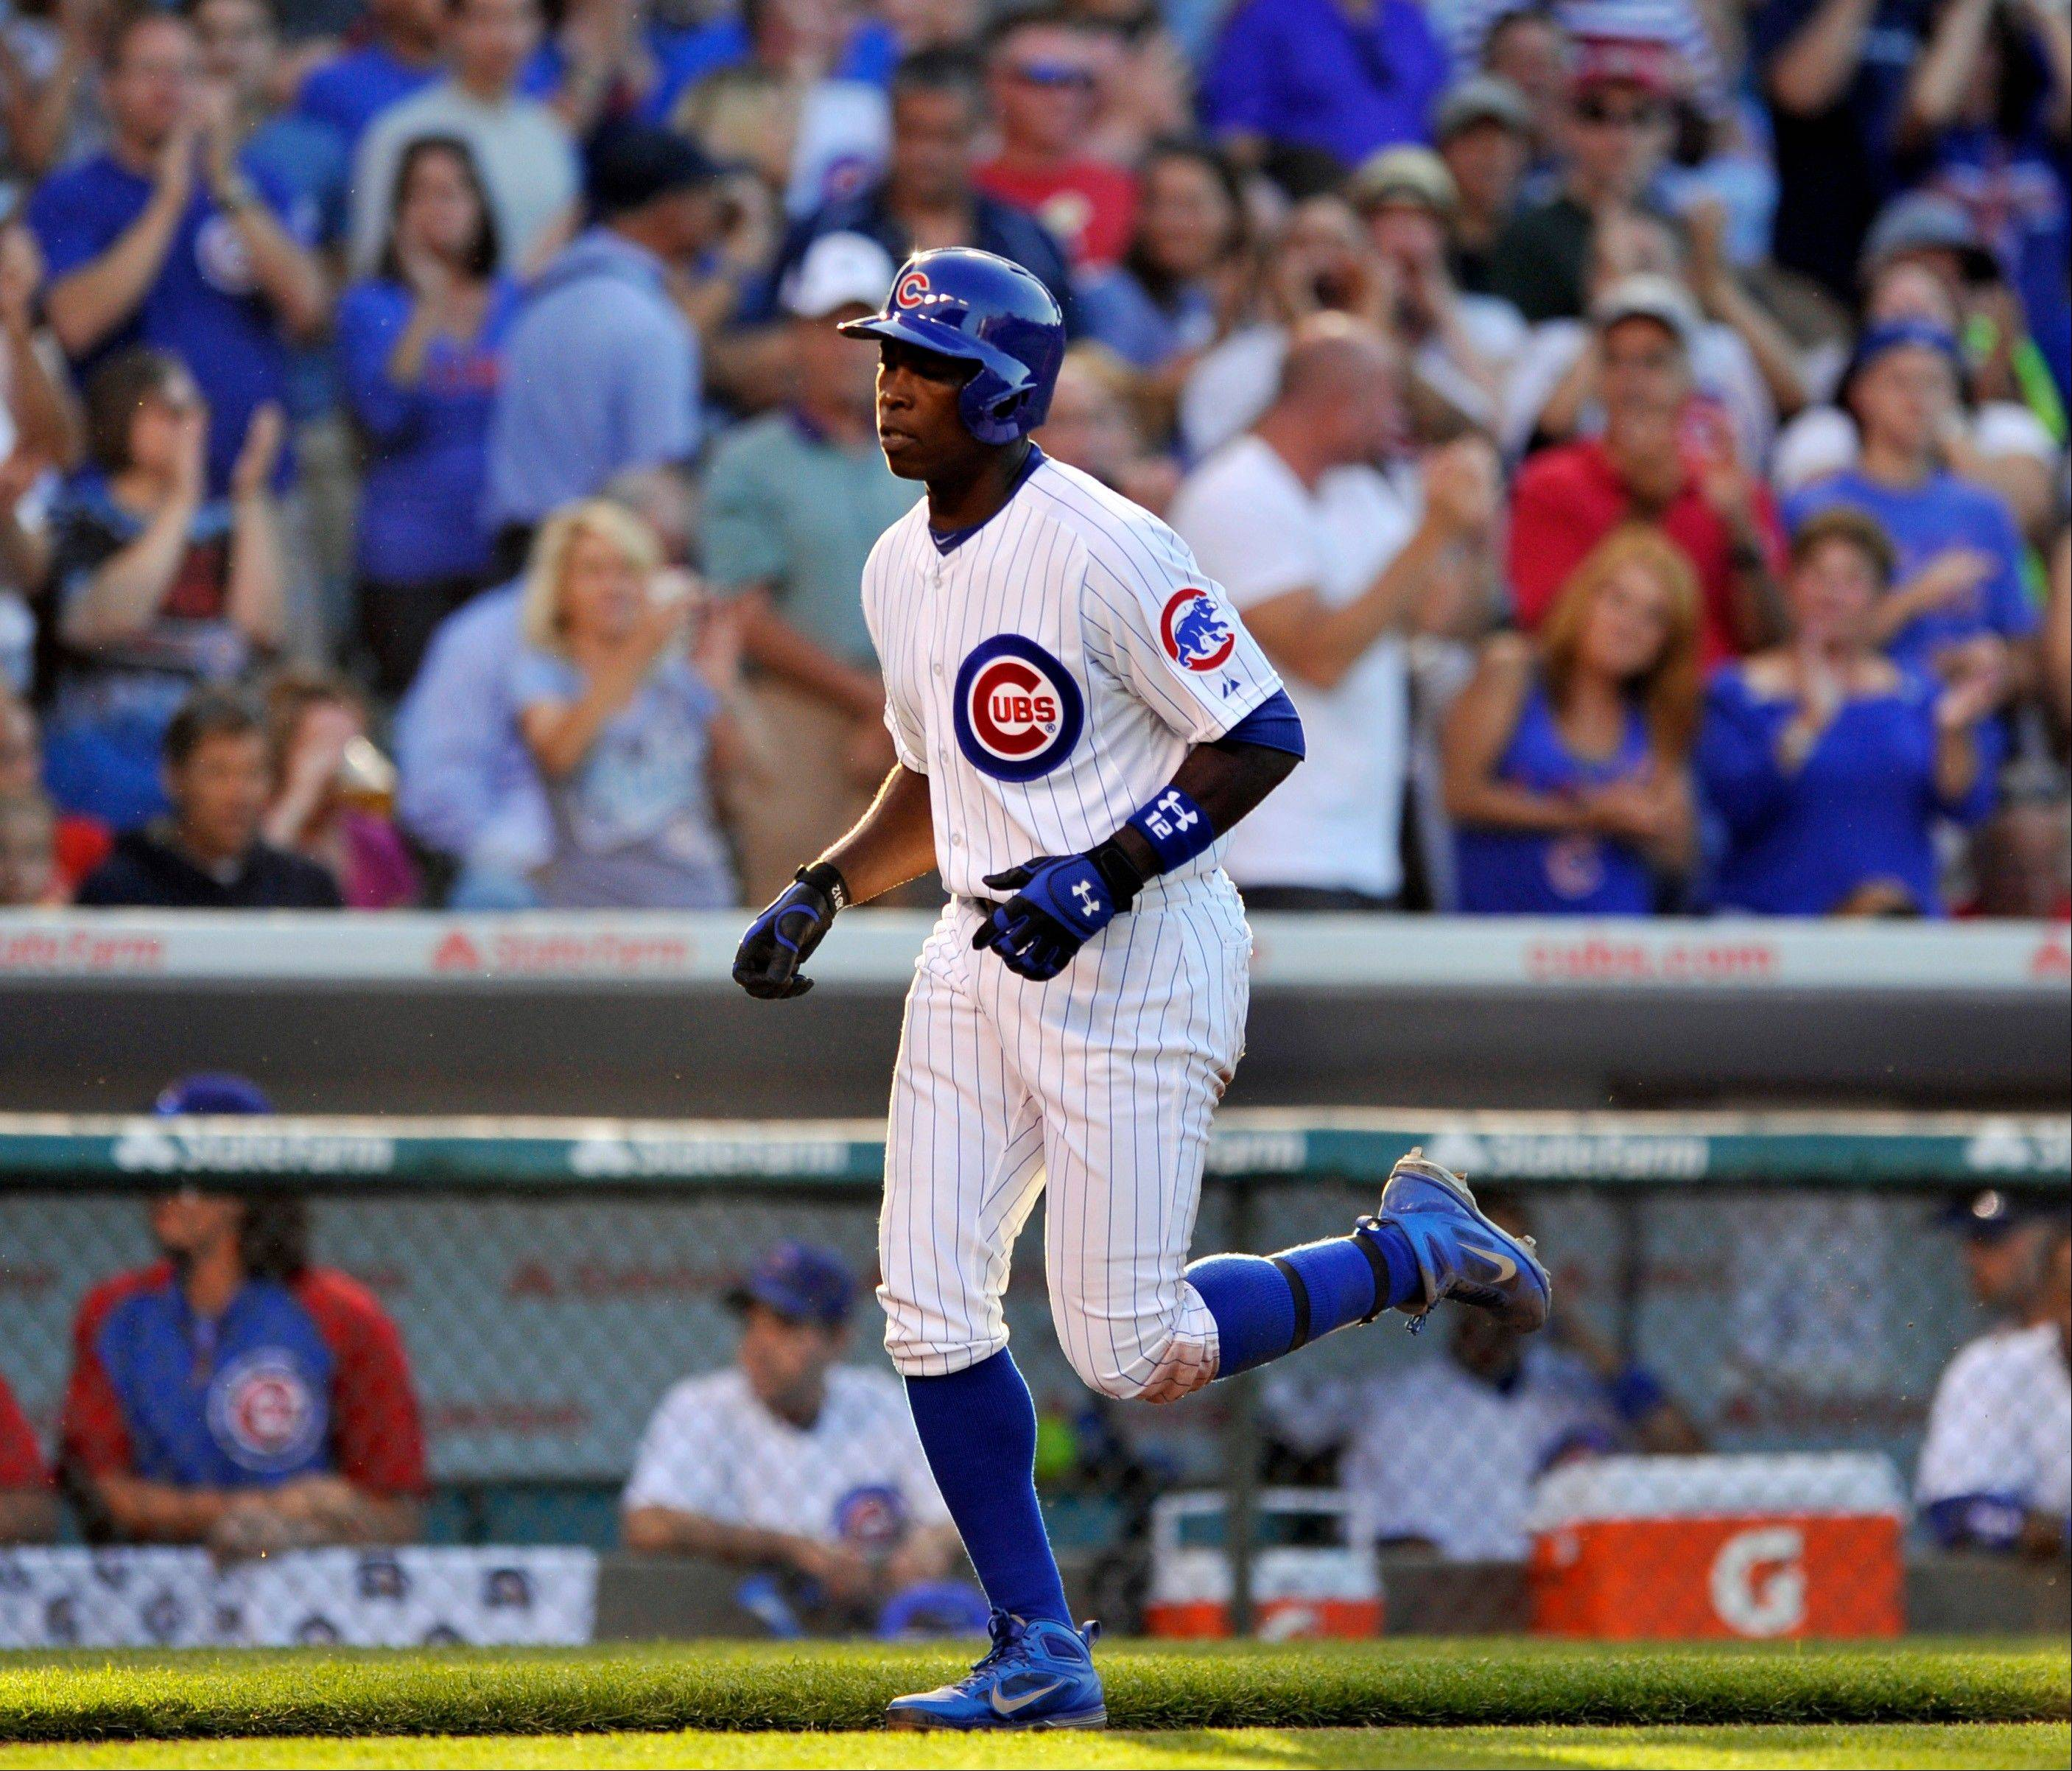 The Cubs' Alfonso Soriano rounds the bases after hitting a solo home run during the third inning of Saturday's game. The Cubs beat the St. Louis Cardinals 6-4 at Wrigley Field.